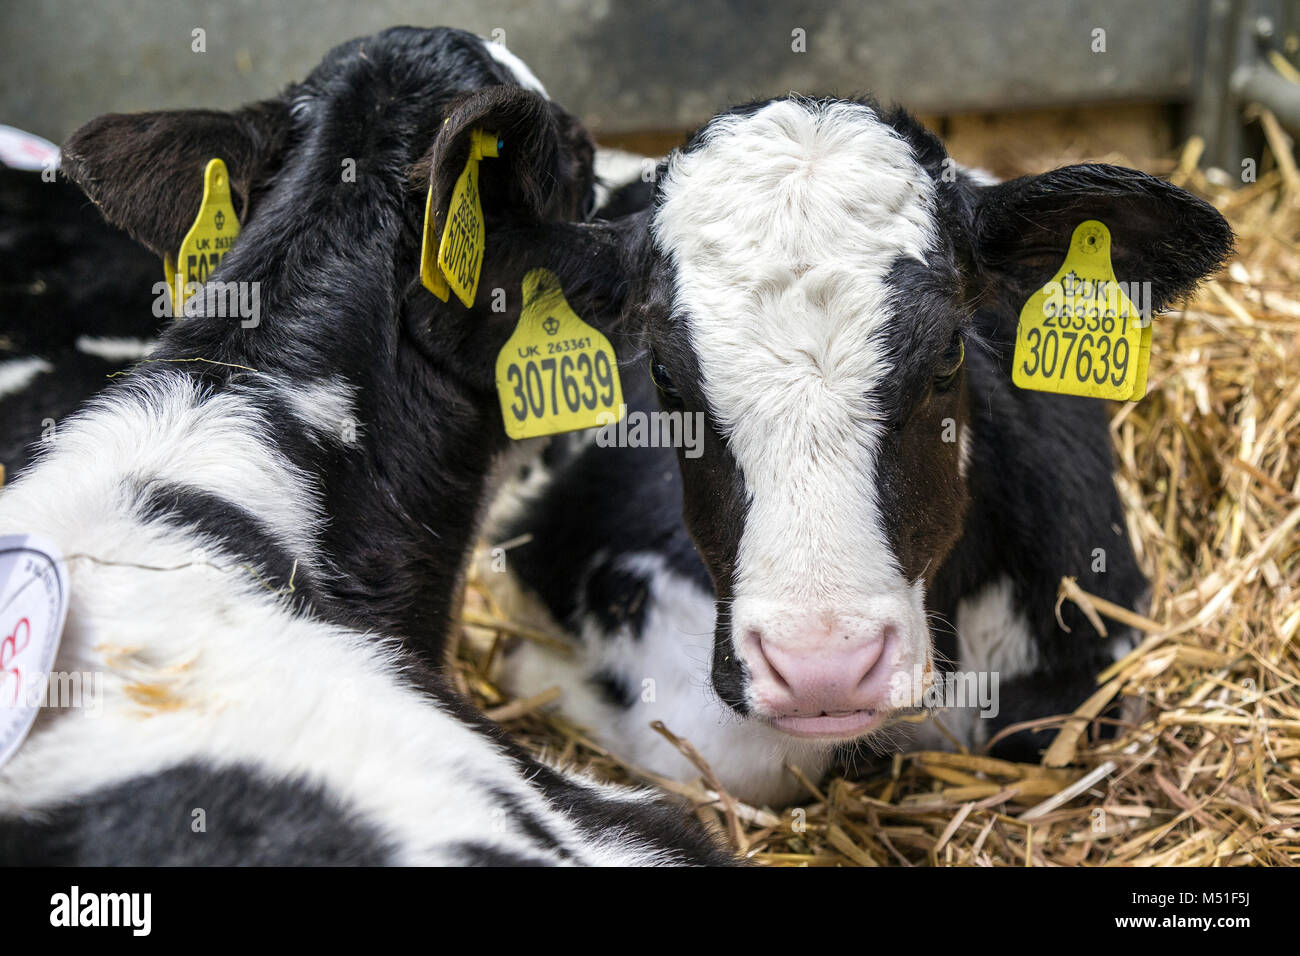 A large farm building,cattle market. hay, or straw or for housing livestock.Large ruminant animals with horns and - Stock Image